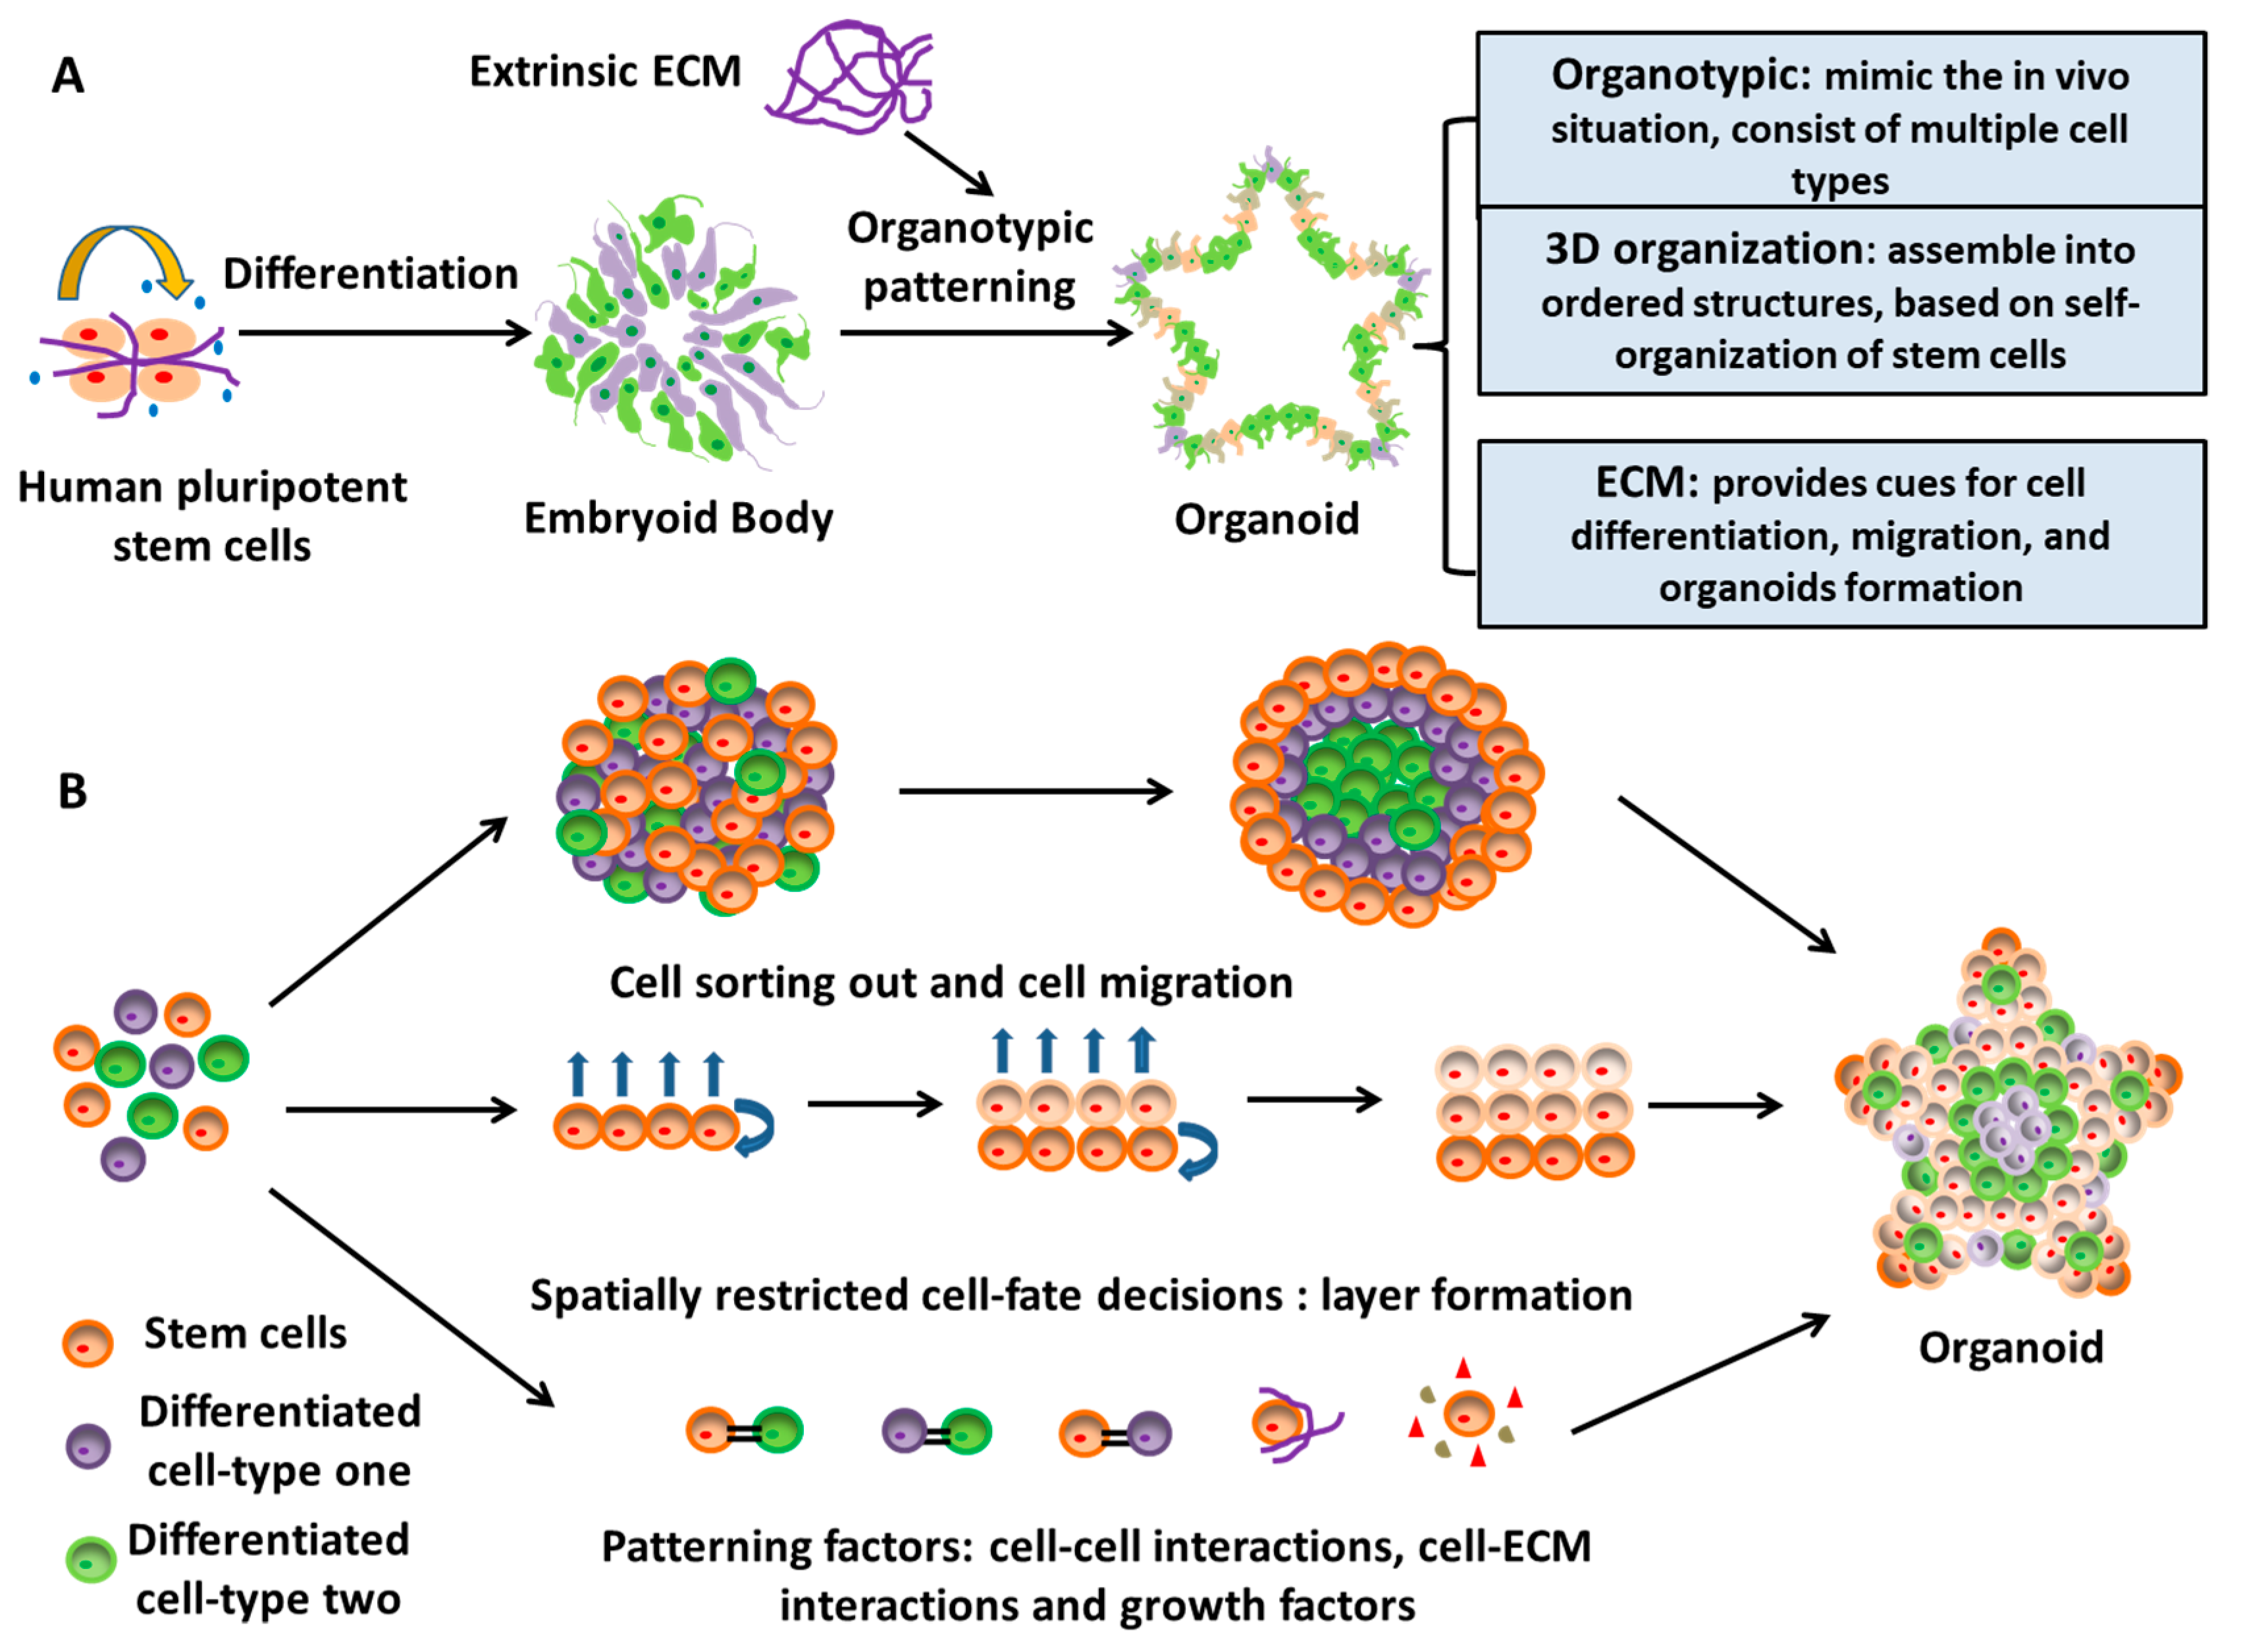 Cells Free Full Text The Use Of Pluripotent Stem Cell Derived Organoids To Study Extracellular Matrix Development During Neural Degeneration Html